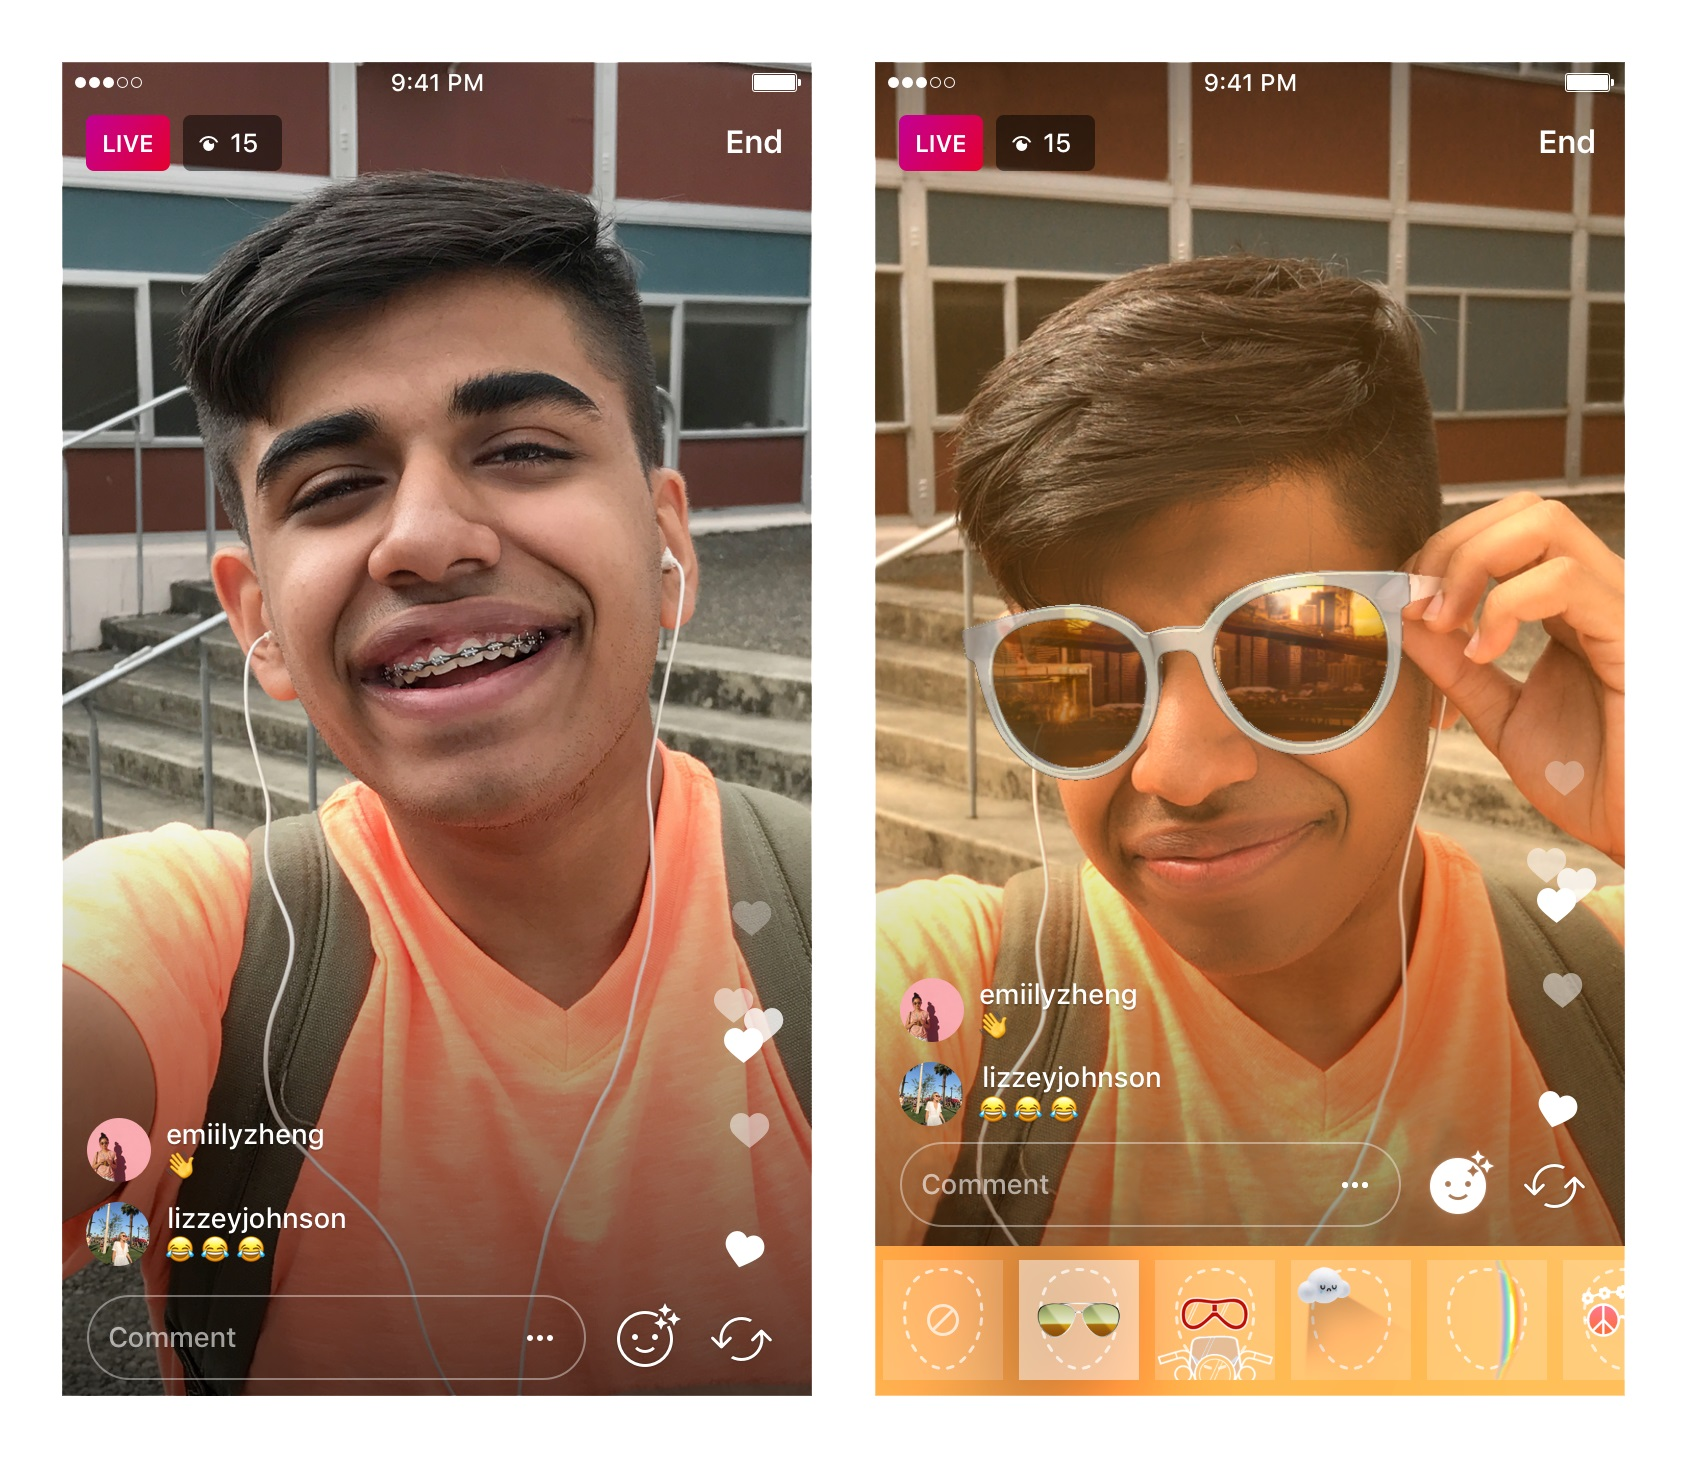 Instagram Live: Your Ultimate Guide To Going Live - Sked Social